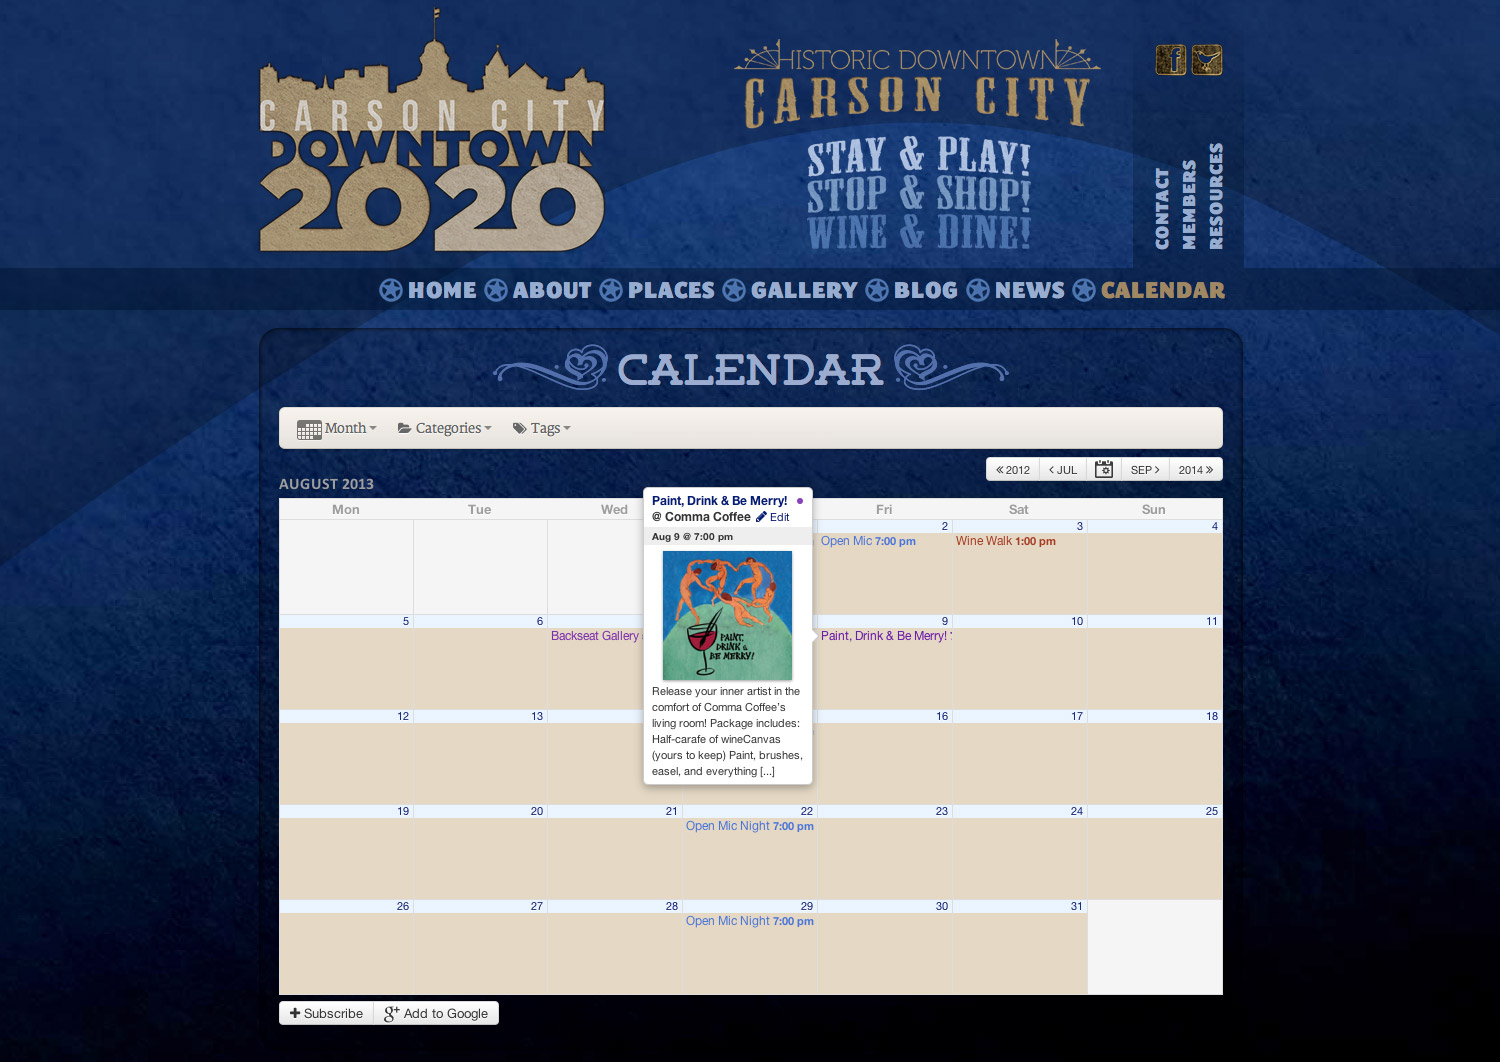 Carson City Downtown 20/20 - Events Calendar Page 3